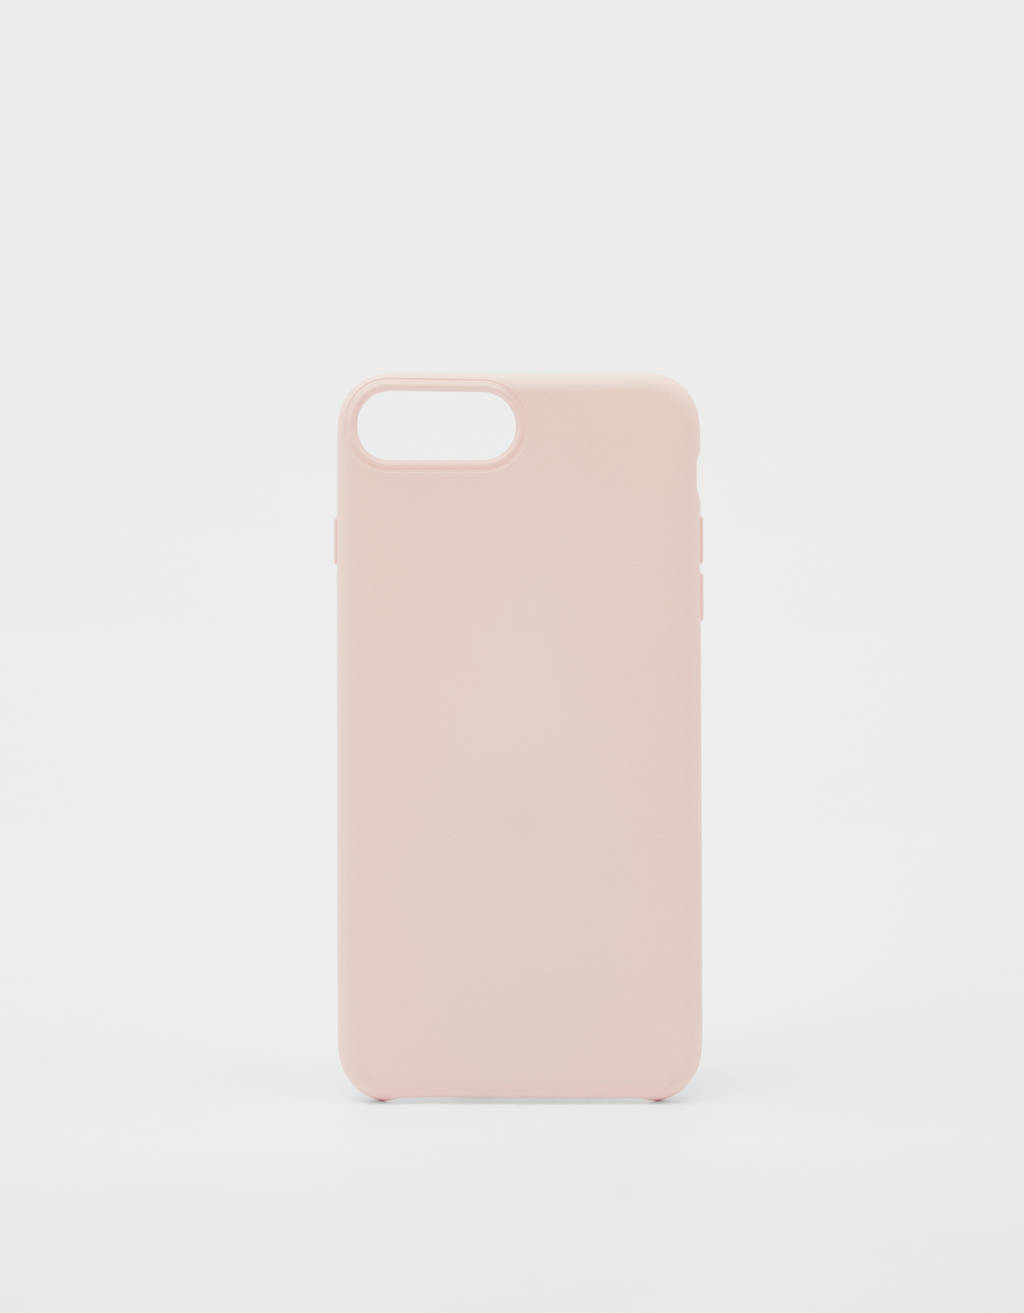 Monokromt cover til iPhone 6 Plus / 7 Plus / 8 Plus